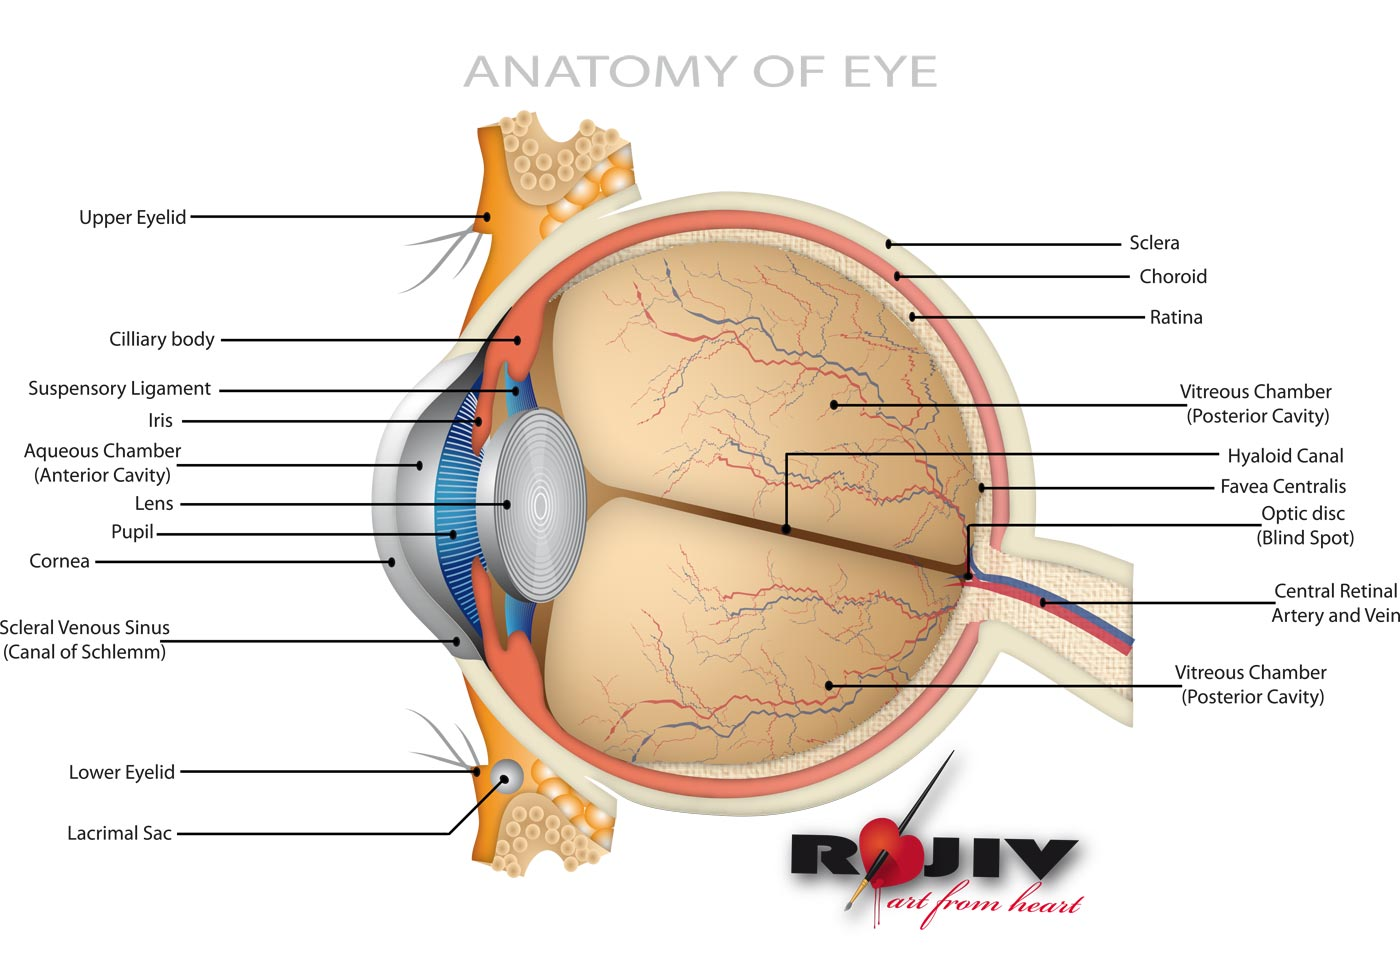 Anatomy of Eye - Download Free Vector Art, Stock Graphics & Images